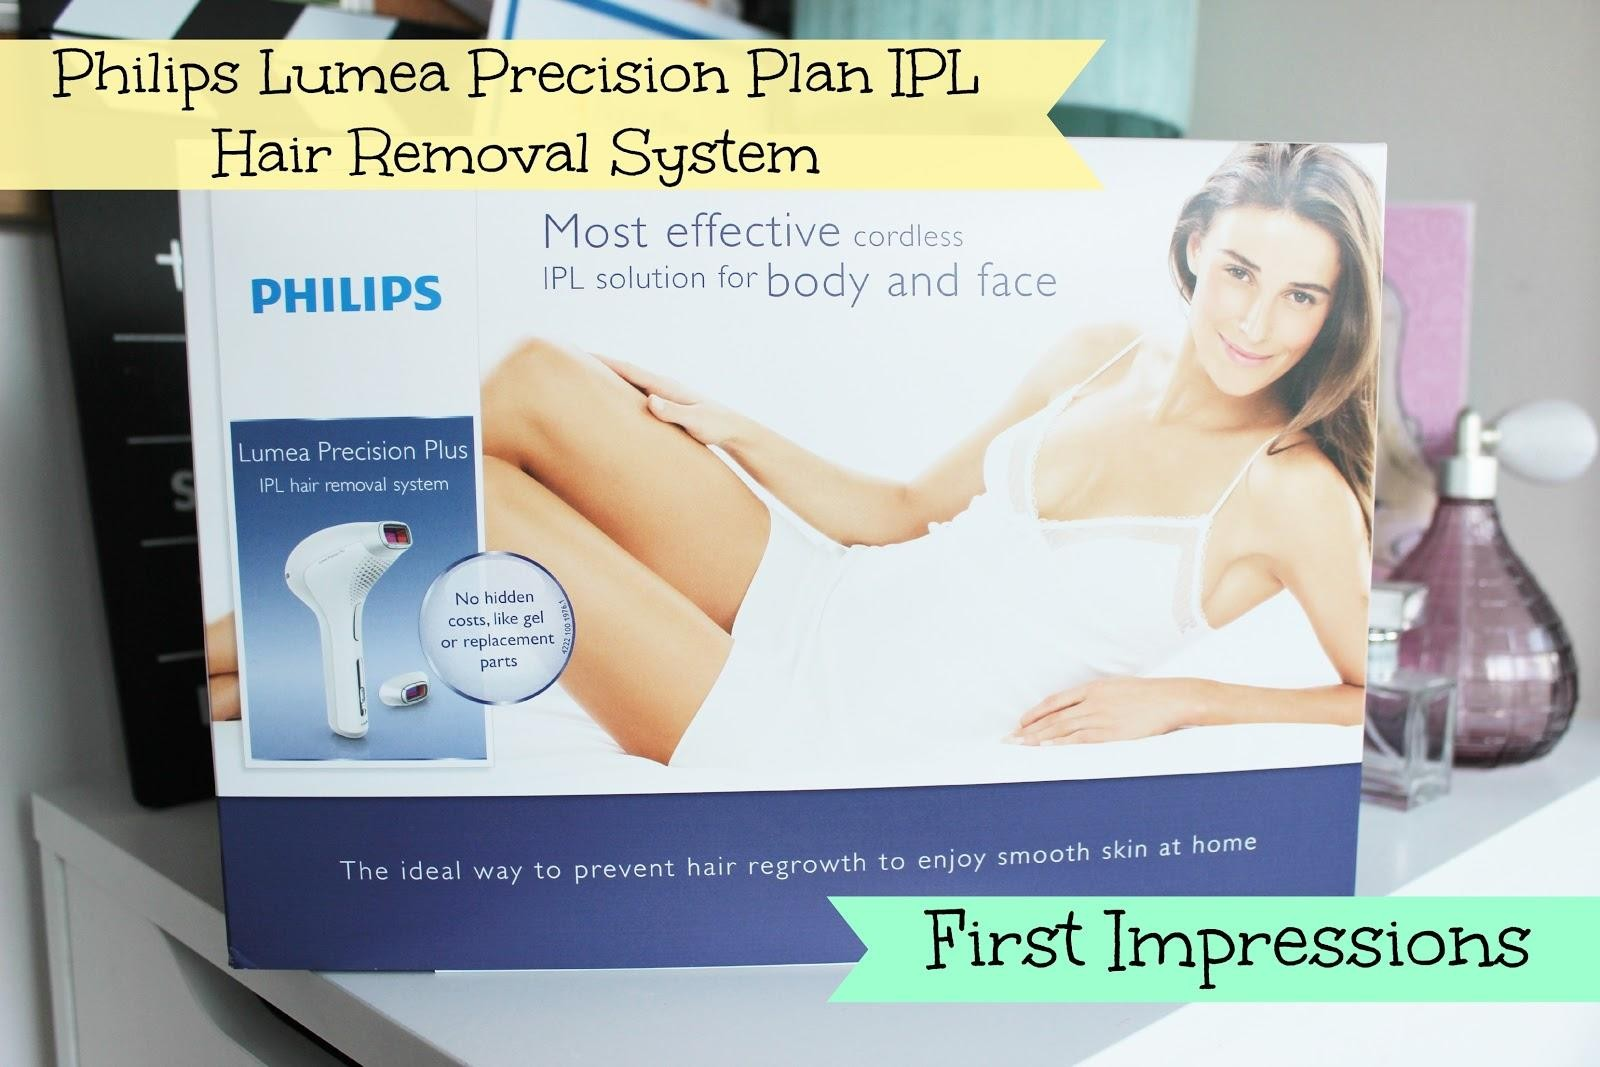 Philips Lumea Precision Plan IPL Hair Removal System First Impressions